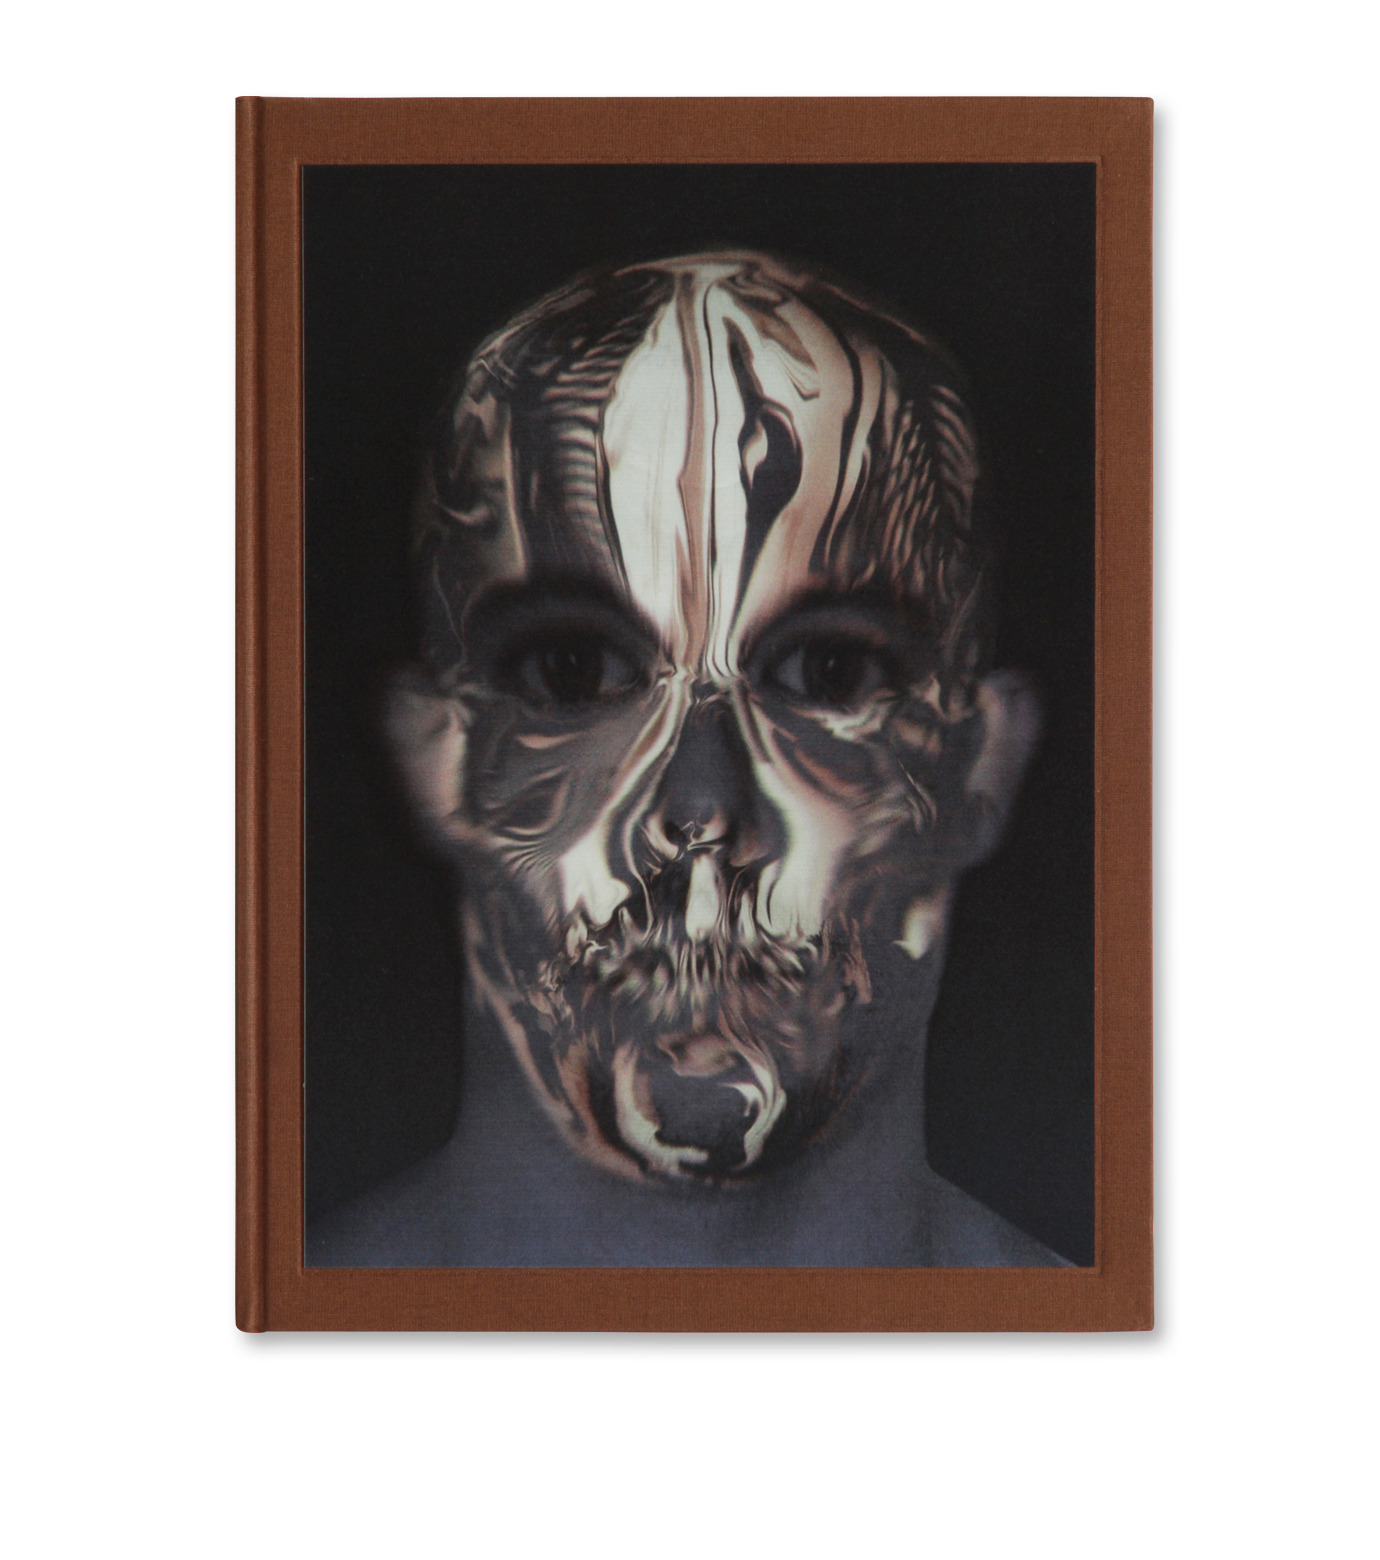 ArtBook(アートブック)のAlexander McQueen: Savage Beauty-SILVER(インテリア/OTHER-GOODS/interior/OTHER-GOODS)-300-16978-2-1 拡大詳細画像2